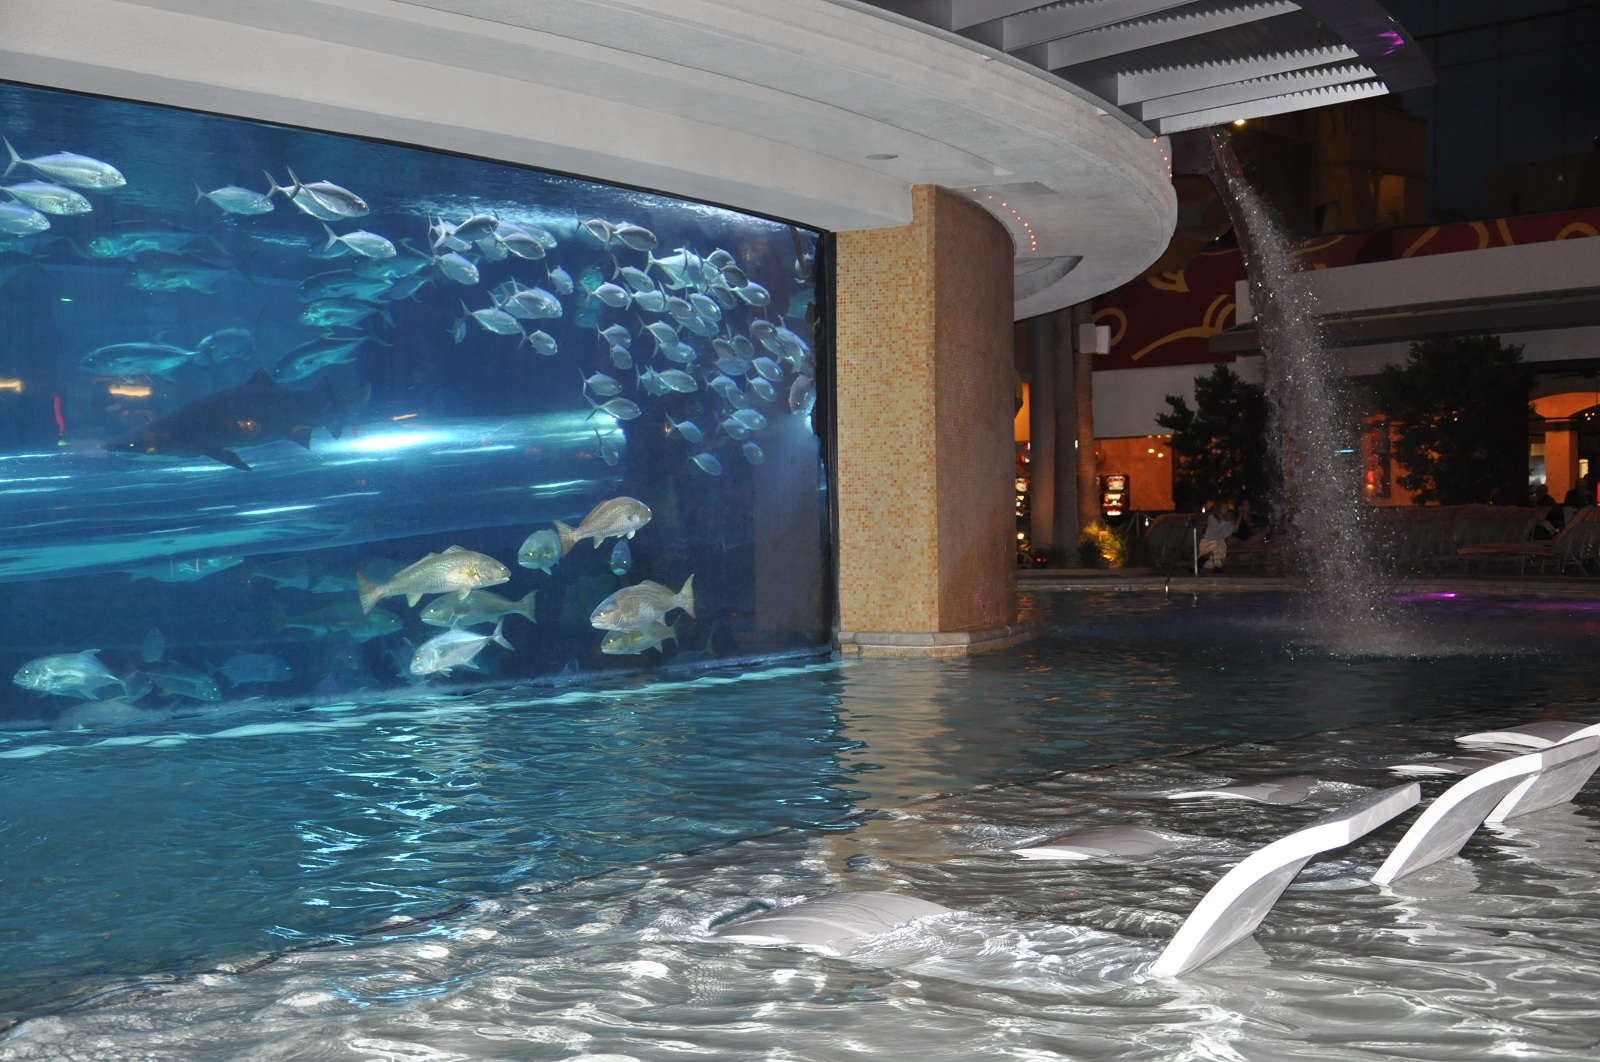 Impressive Swimming Pool, Las Vegas, SUA, Golden Nugget night view